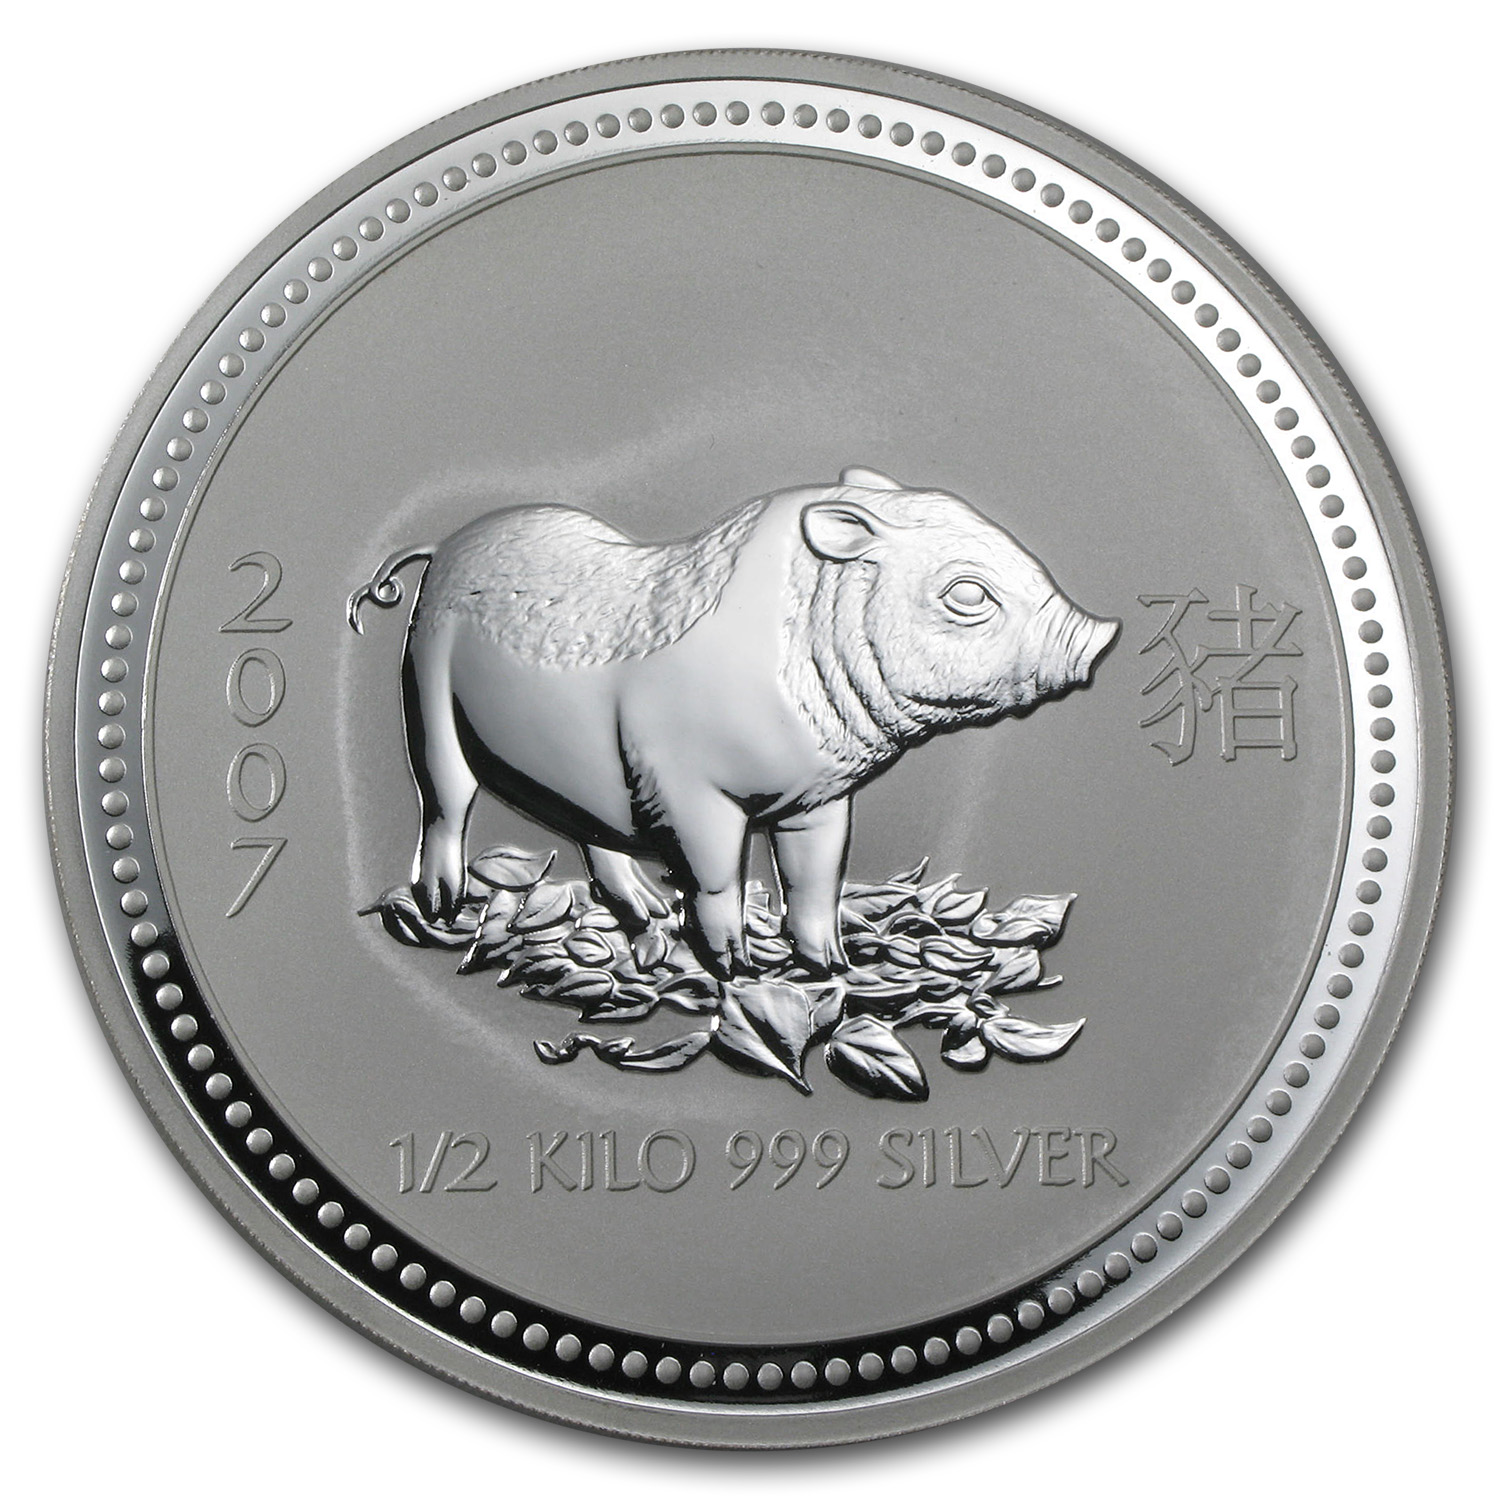 2007 Australia 1/2 kilo Silver Year of the Pig BU (16.075 oz)